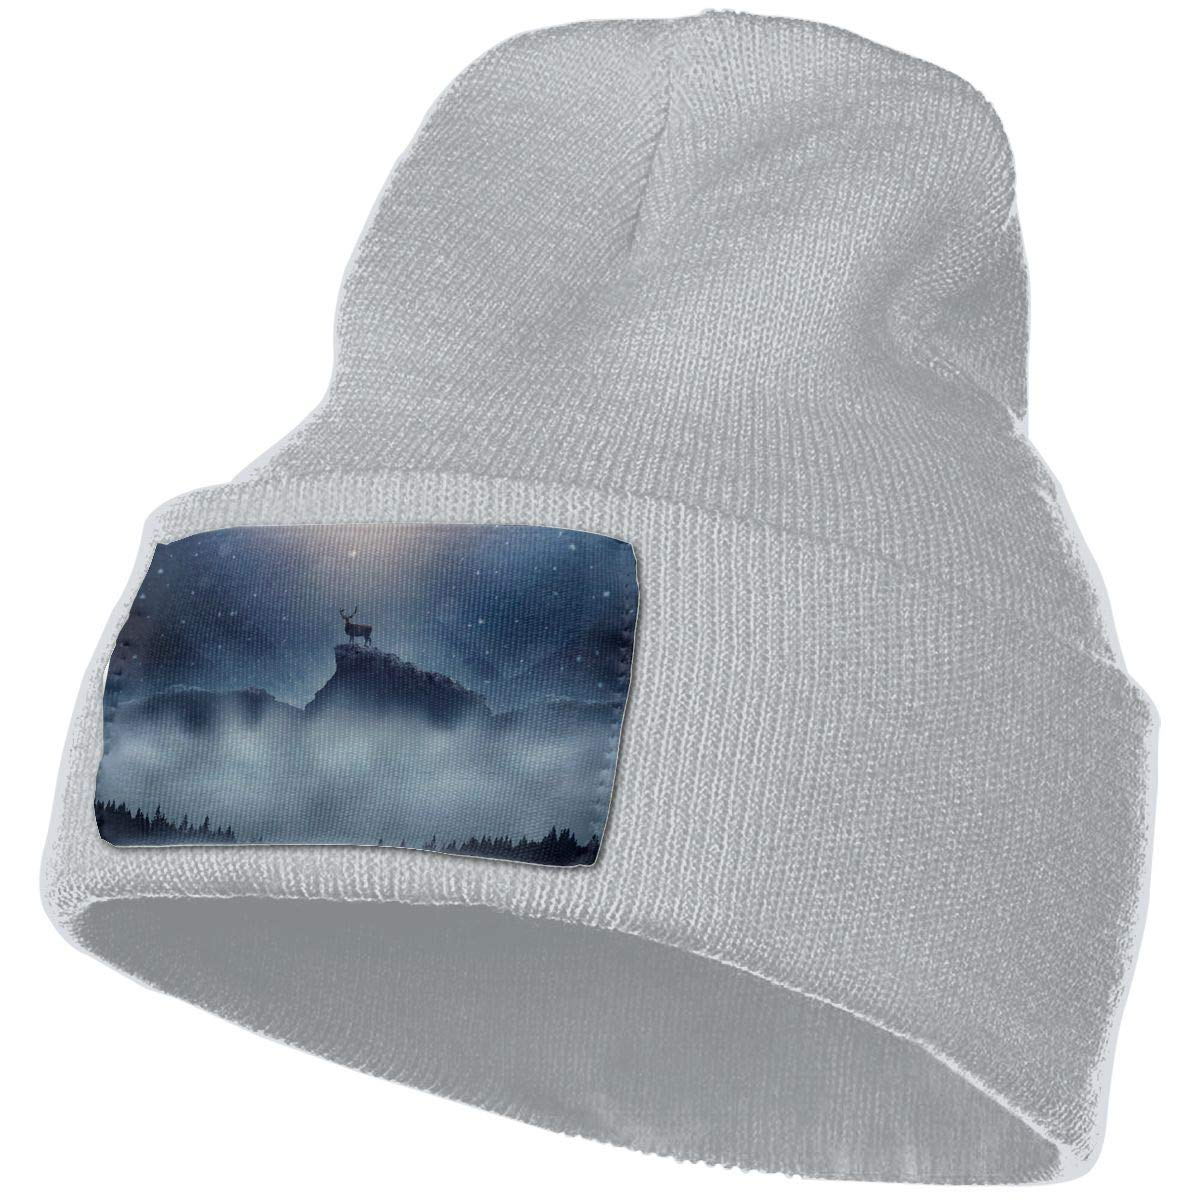 Yubb7E Deer-Snowfall Warm Knit Winter Solid Beanie Hat Unisex Skull Cap